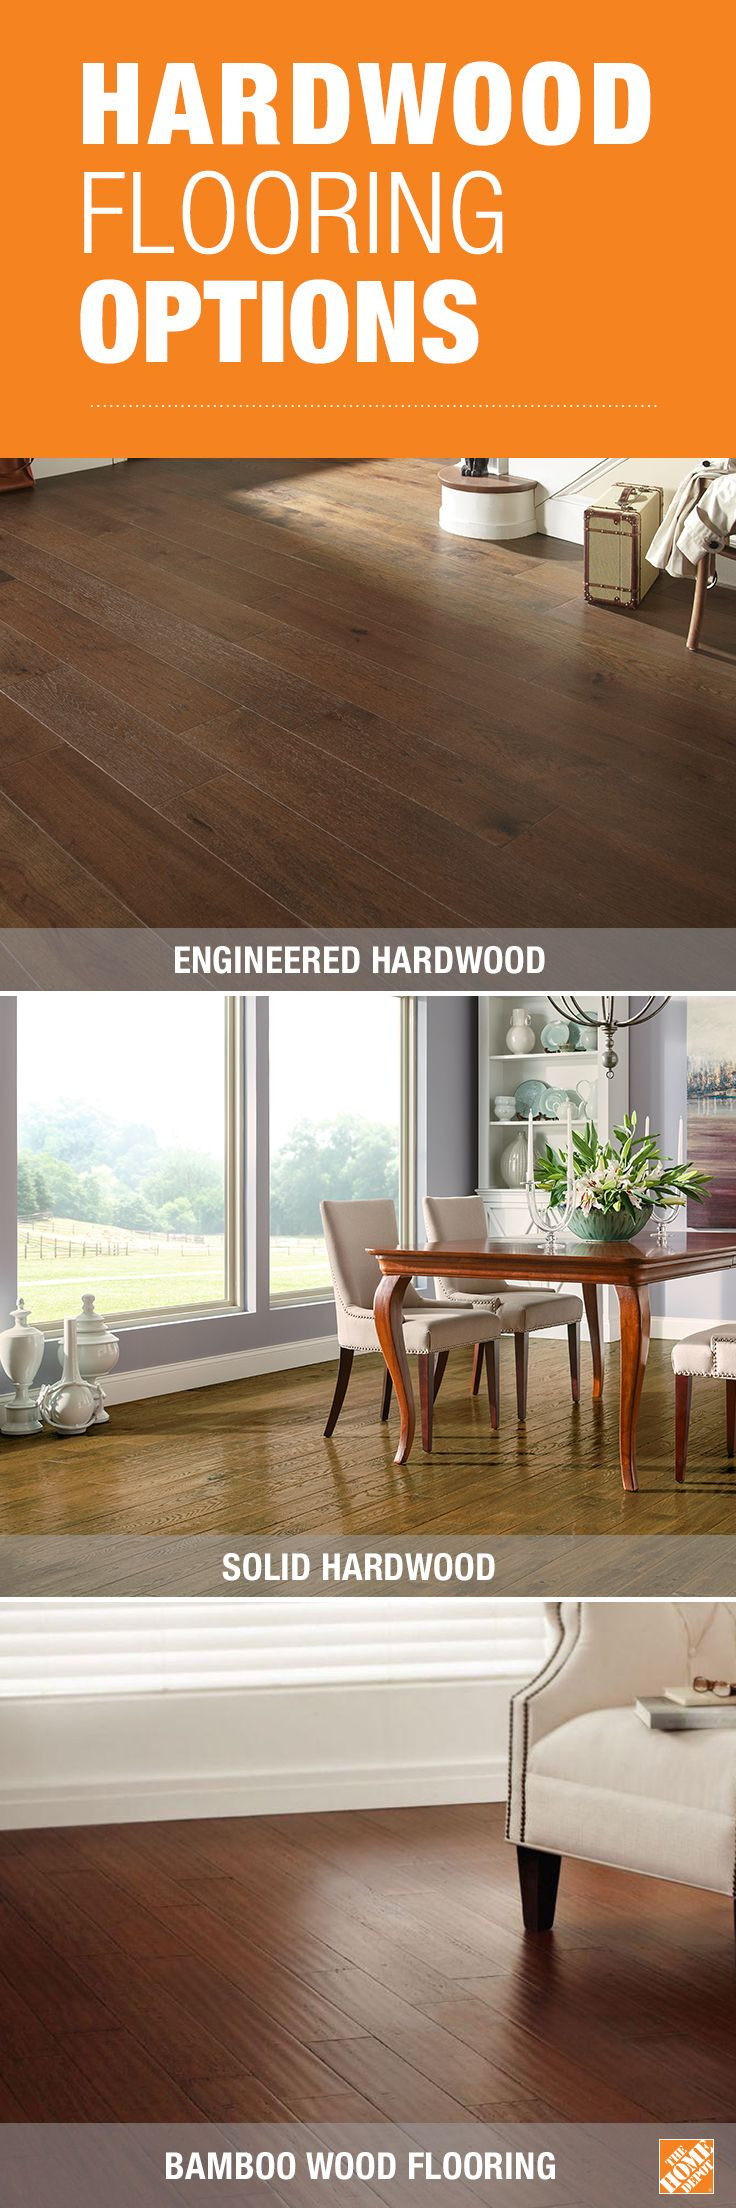 hardwood floor gap filler home depot of 161 best home improvement images on pinterest historic homes old within find a wide selection of wood flooring at the home depot including the latest in